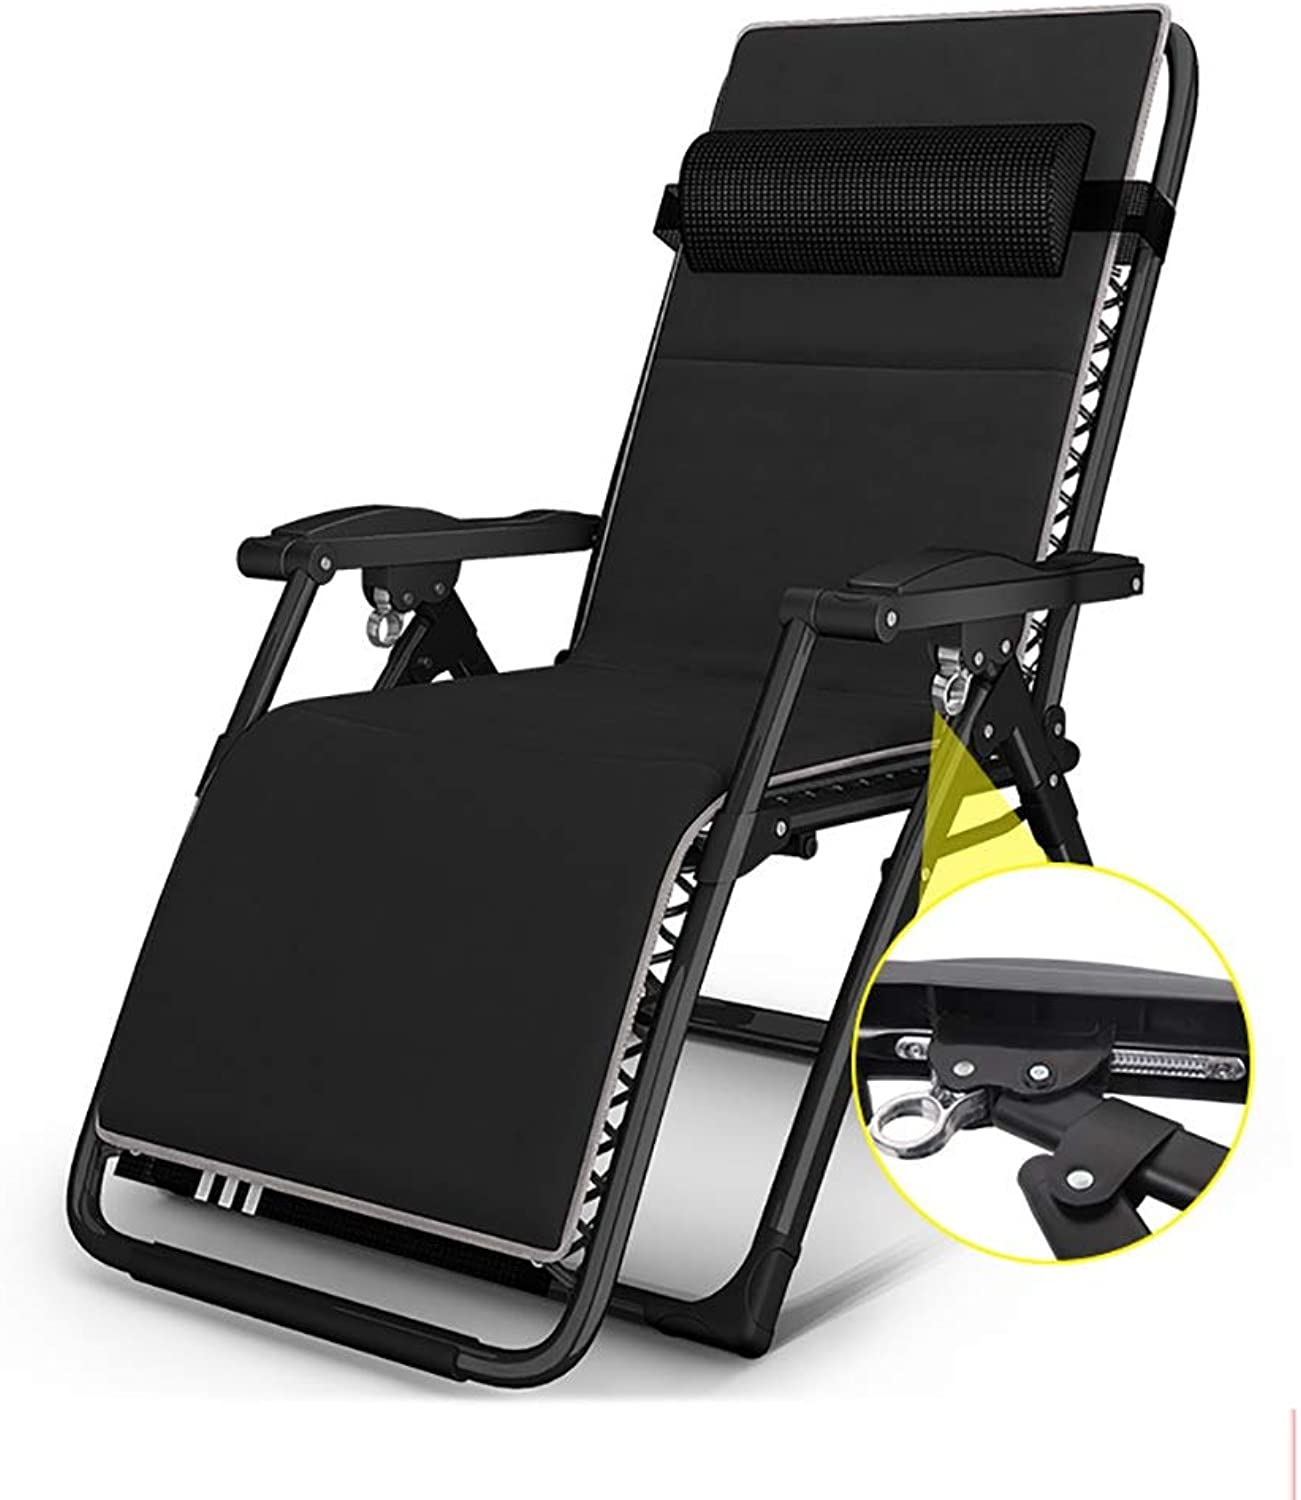 Multi Position Sun Lounger, Lightweight Folding Chair with A Headrest, Perfect for Garden Camping Travel Fishing Hiking Picnic- Black bluee